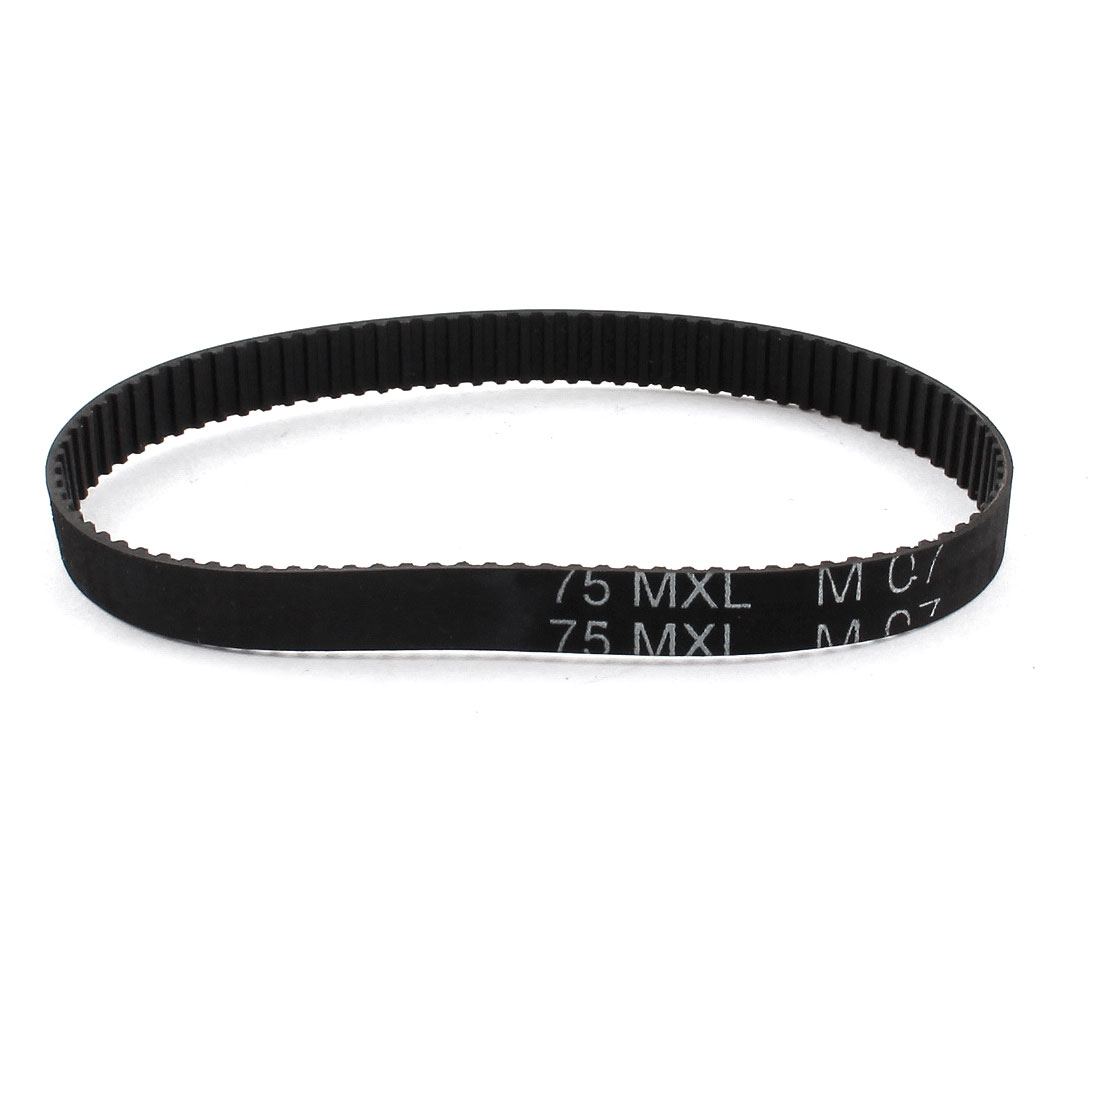 "75MXL025 94 Teeth 2.032mm Pitch 1/4"" Width Black Industrial Stepper Motor 3D Printer Groove Synchronous Timing Belt 7.5"" Girth"